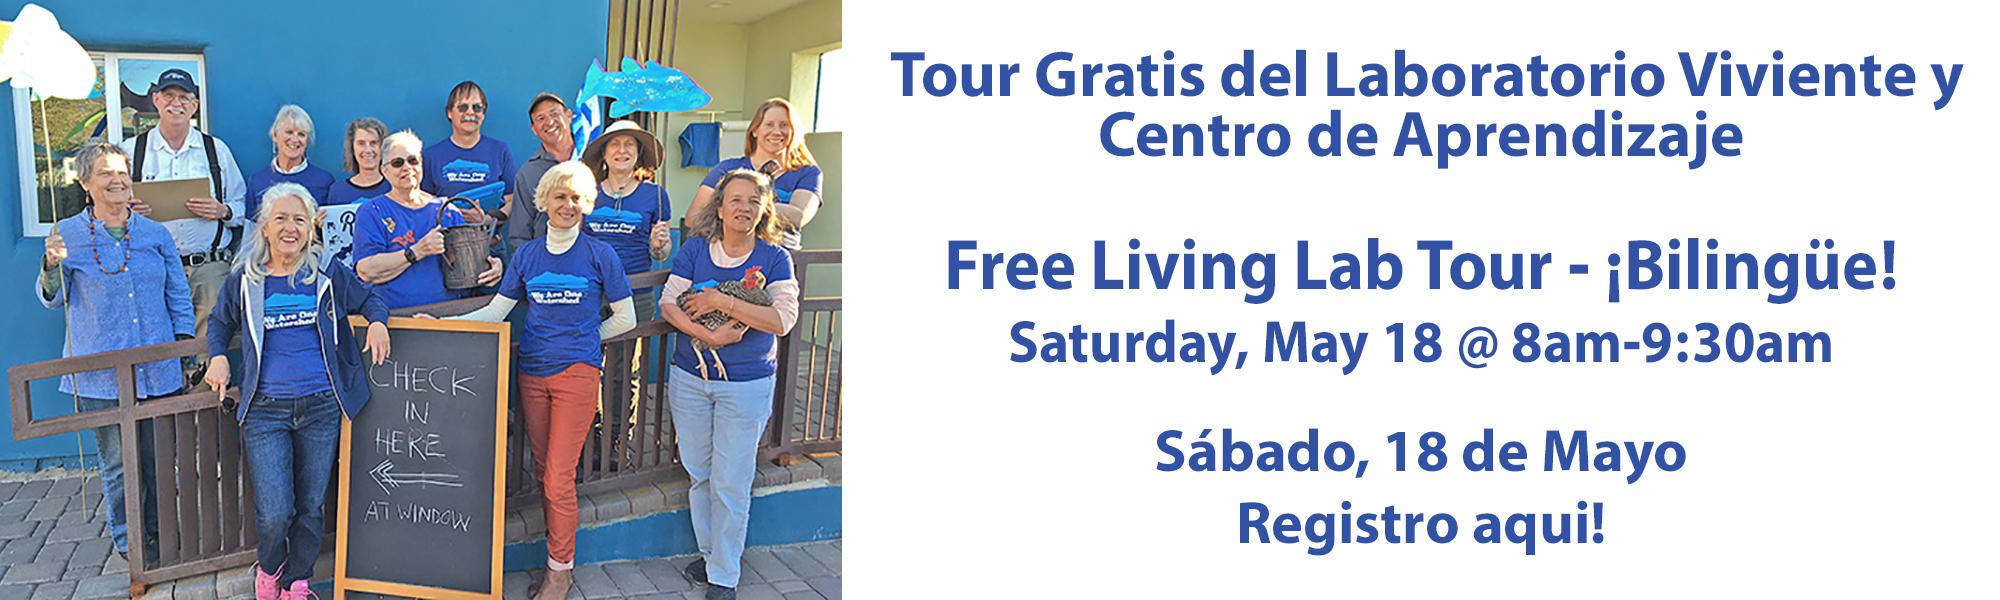 Bilingual Living Lab Tour May 18 2019